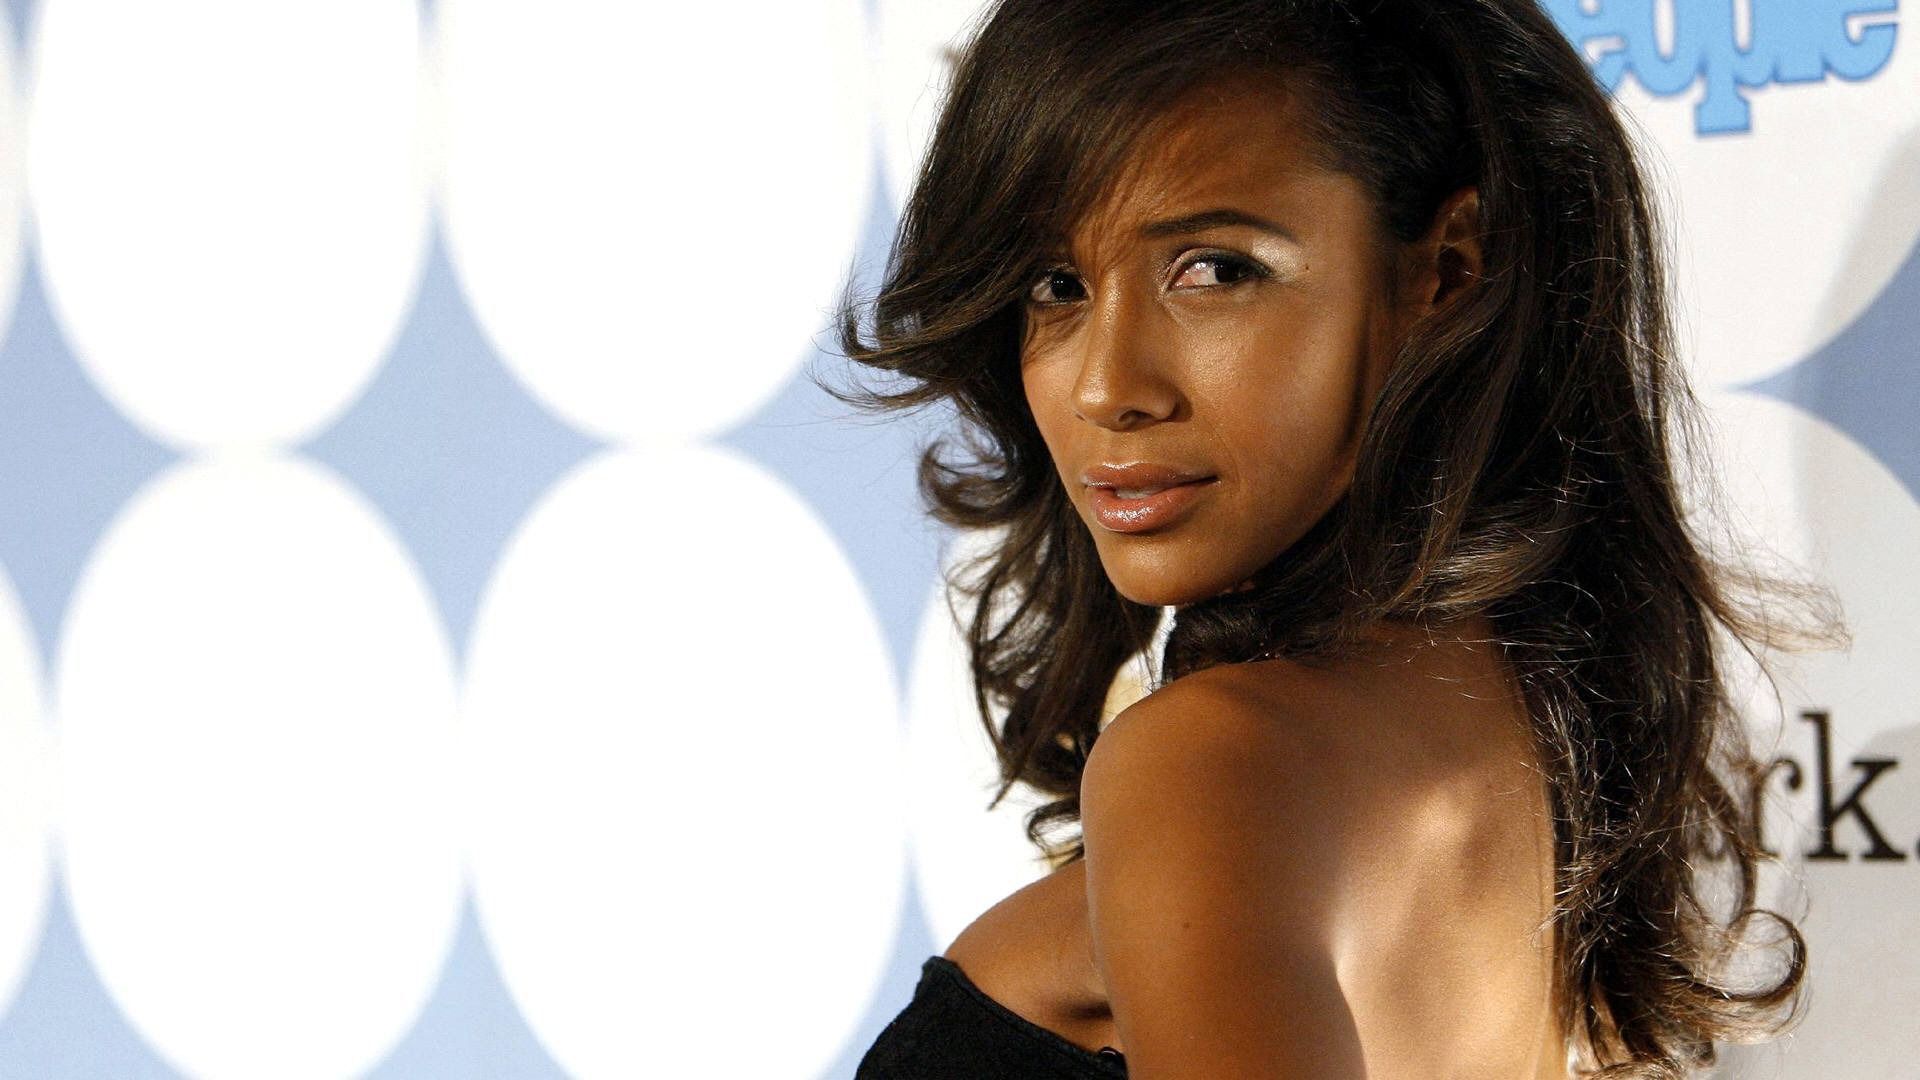 Best Dania Ramirez wallpaper ID:125535 for High Resolution full hd 1920x1080 desktop